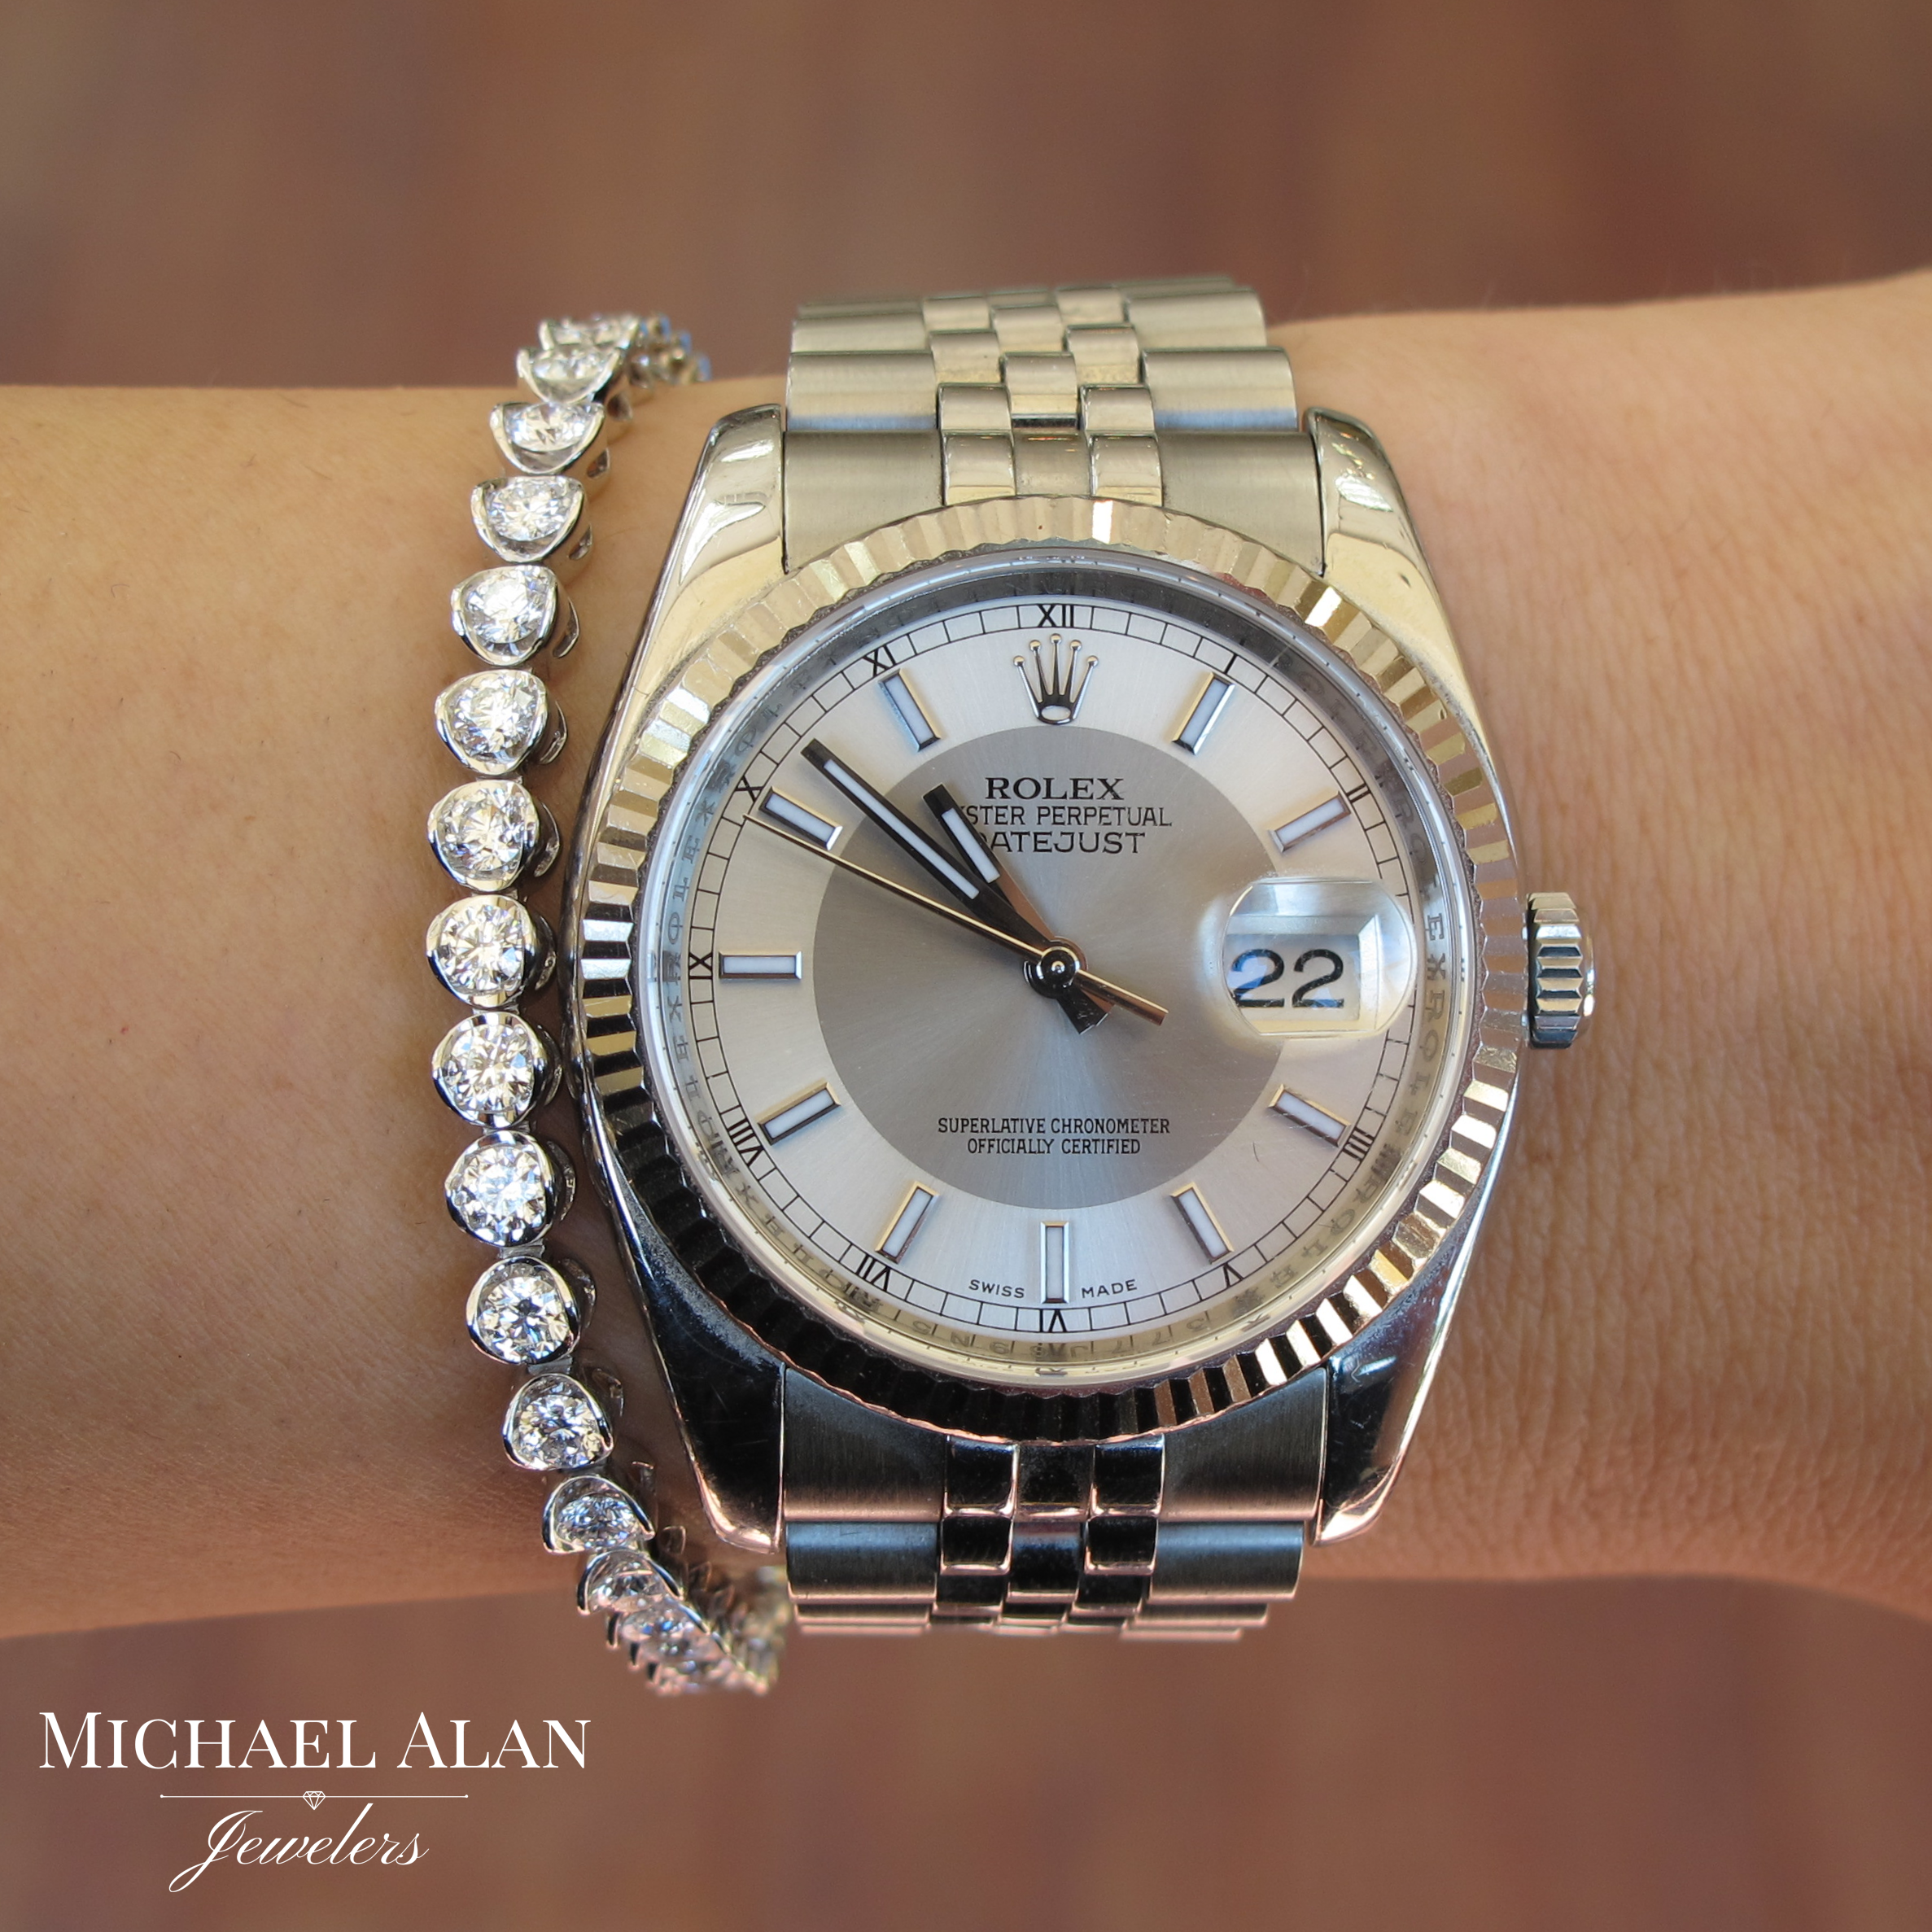 18K white gold tennis bracelet with 40 round brilliant cut diamonds at 4.86 carat total weight.